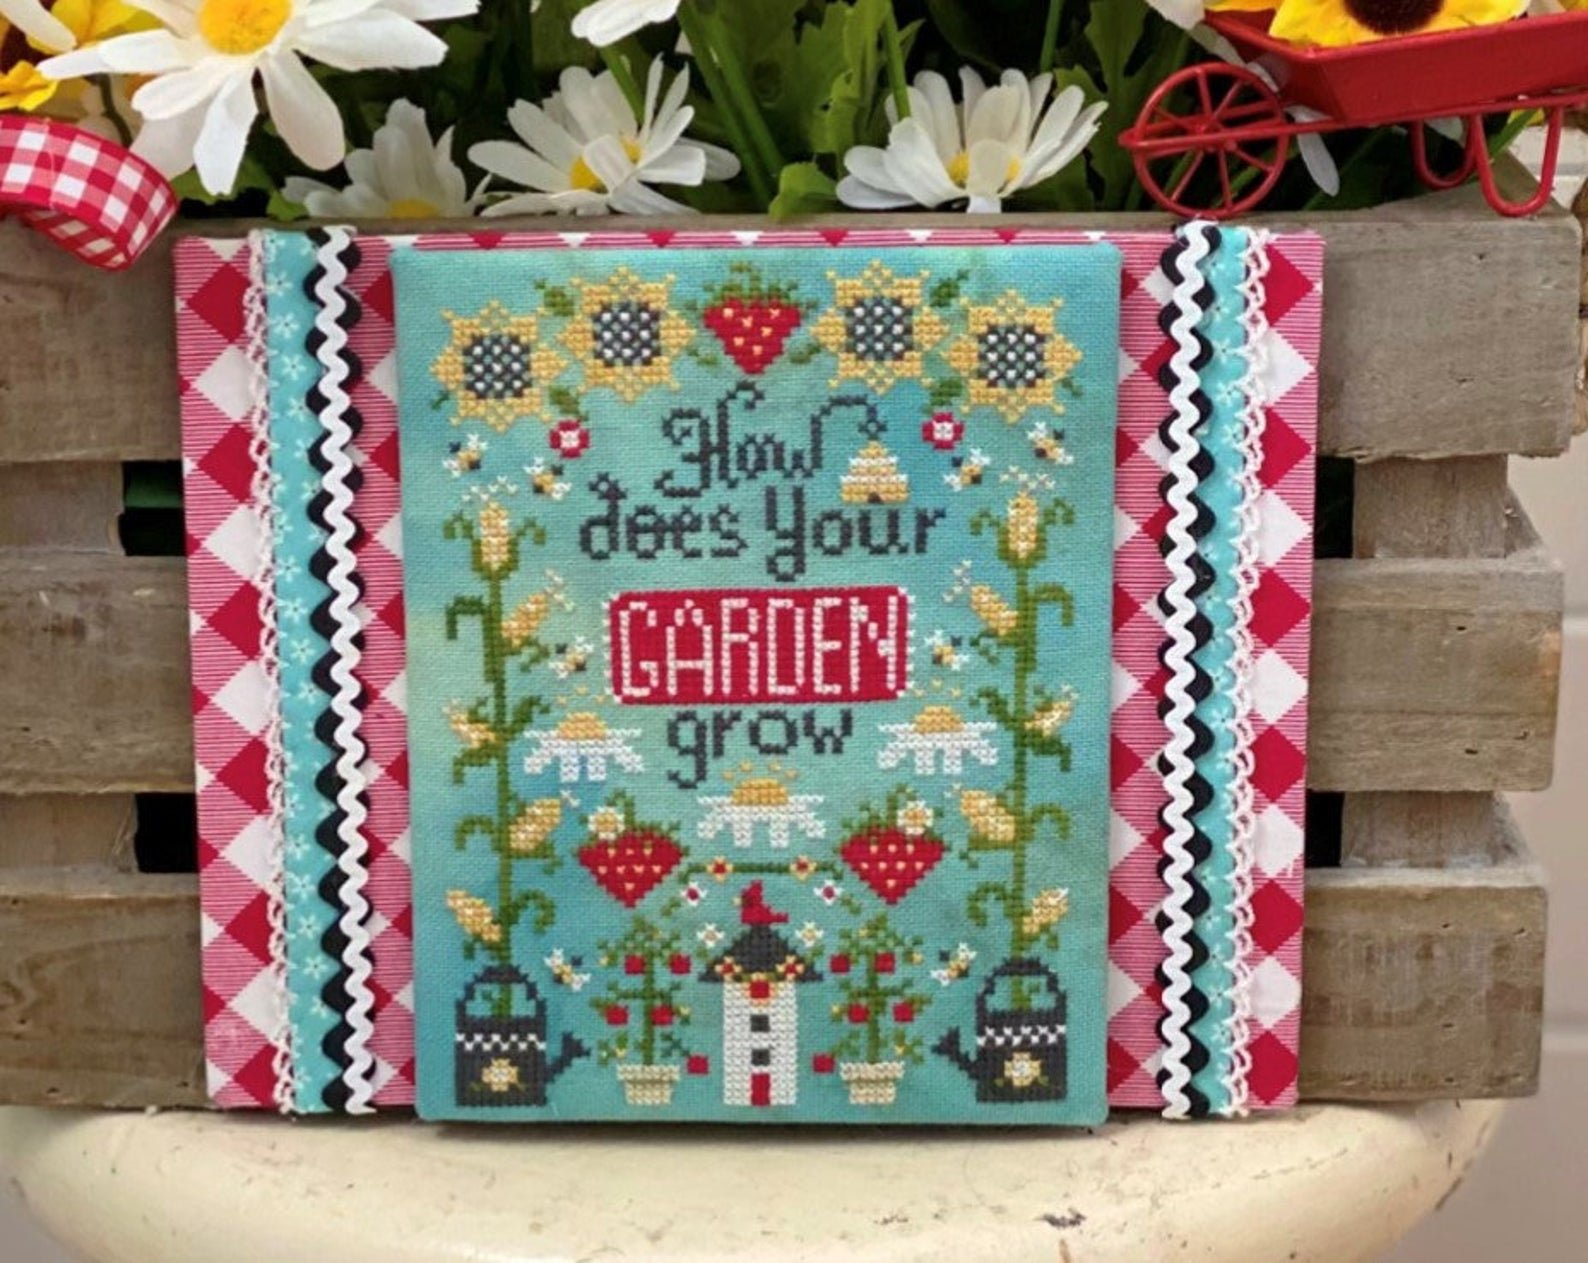 How Does Your Garden Grow Cross Stitch Pattern by Stitching with the Housewives